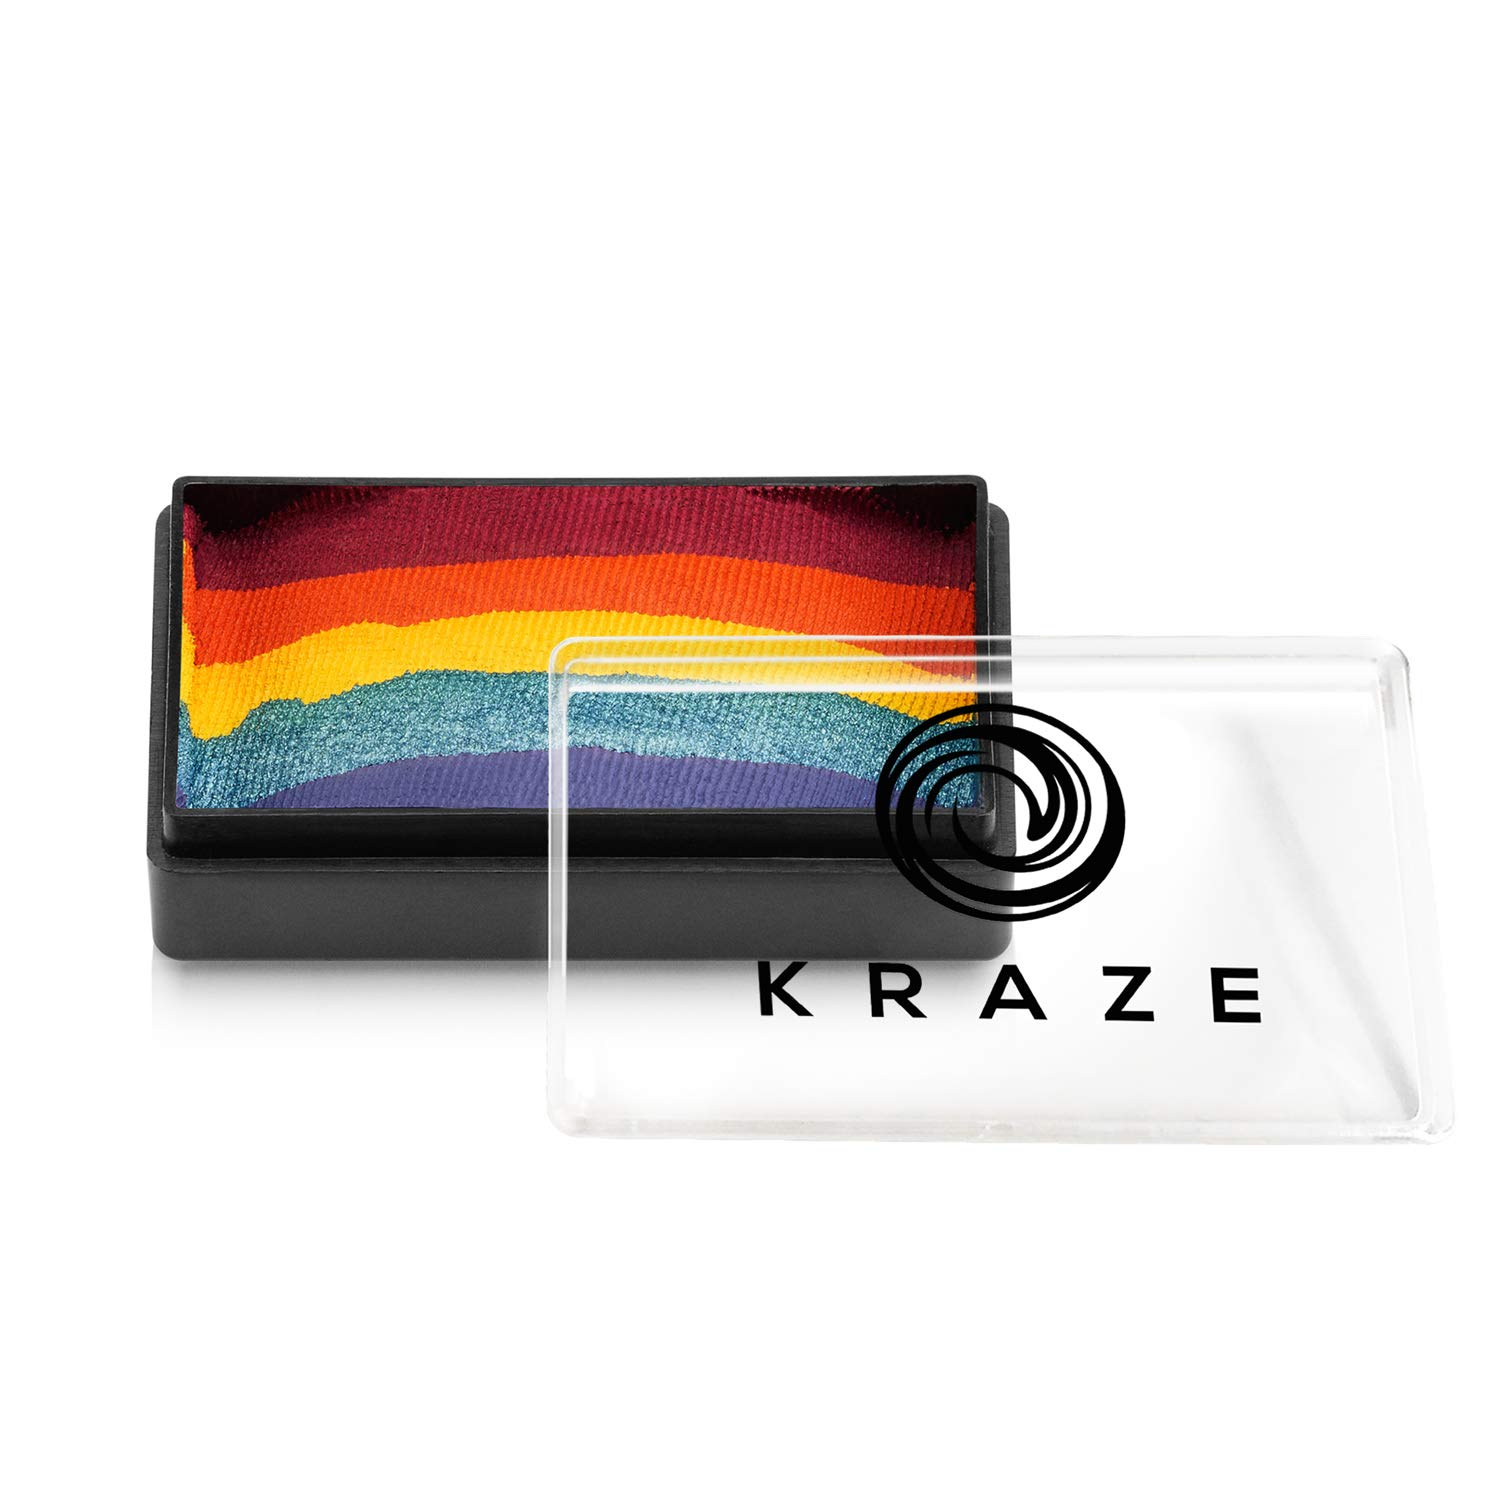 Kraze FX Dome Stroke - Girly Girl Rainbow (25 gm), Professional 1-Stroke Split Cake, Hypoallergenic, Non-Toxic, Water Activated Face & Body Painting Makeup Supplies for Sensitive Skin, Kids, Adults